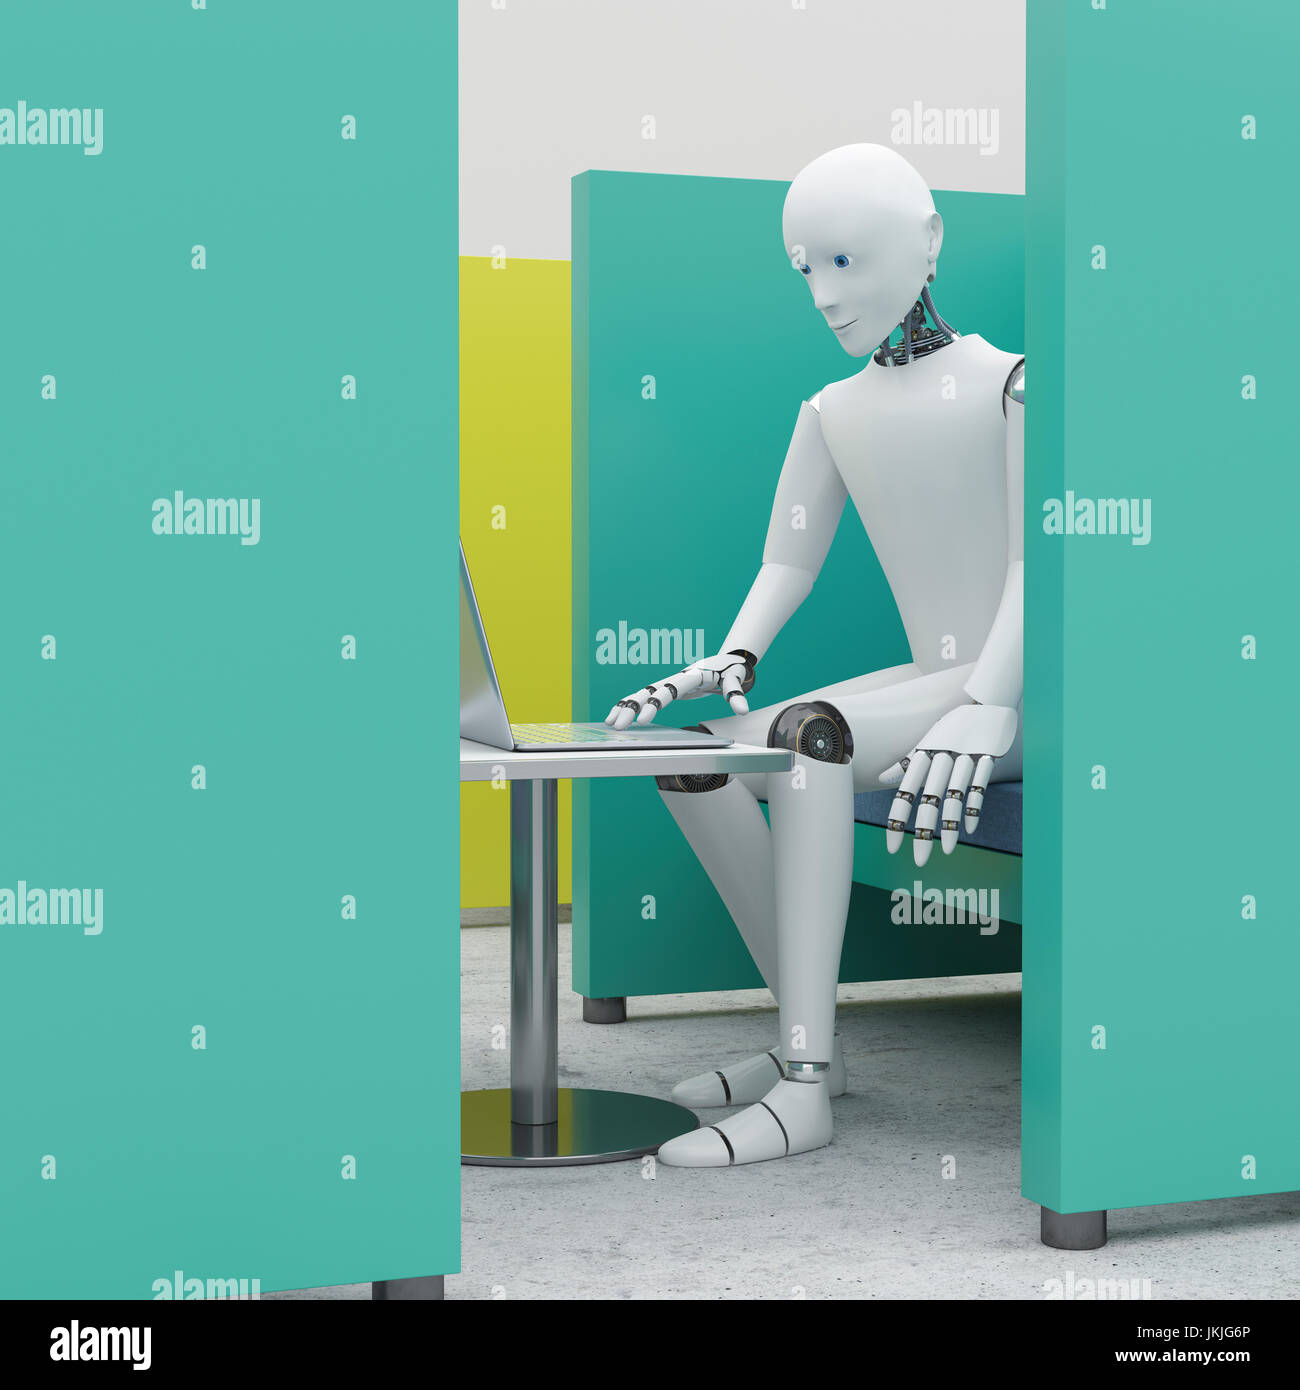 Robot using laptop in office cubicle, 3D Rendering Photo Stock